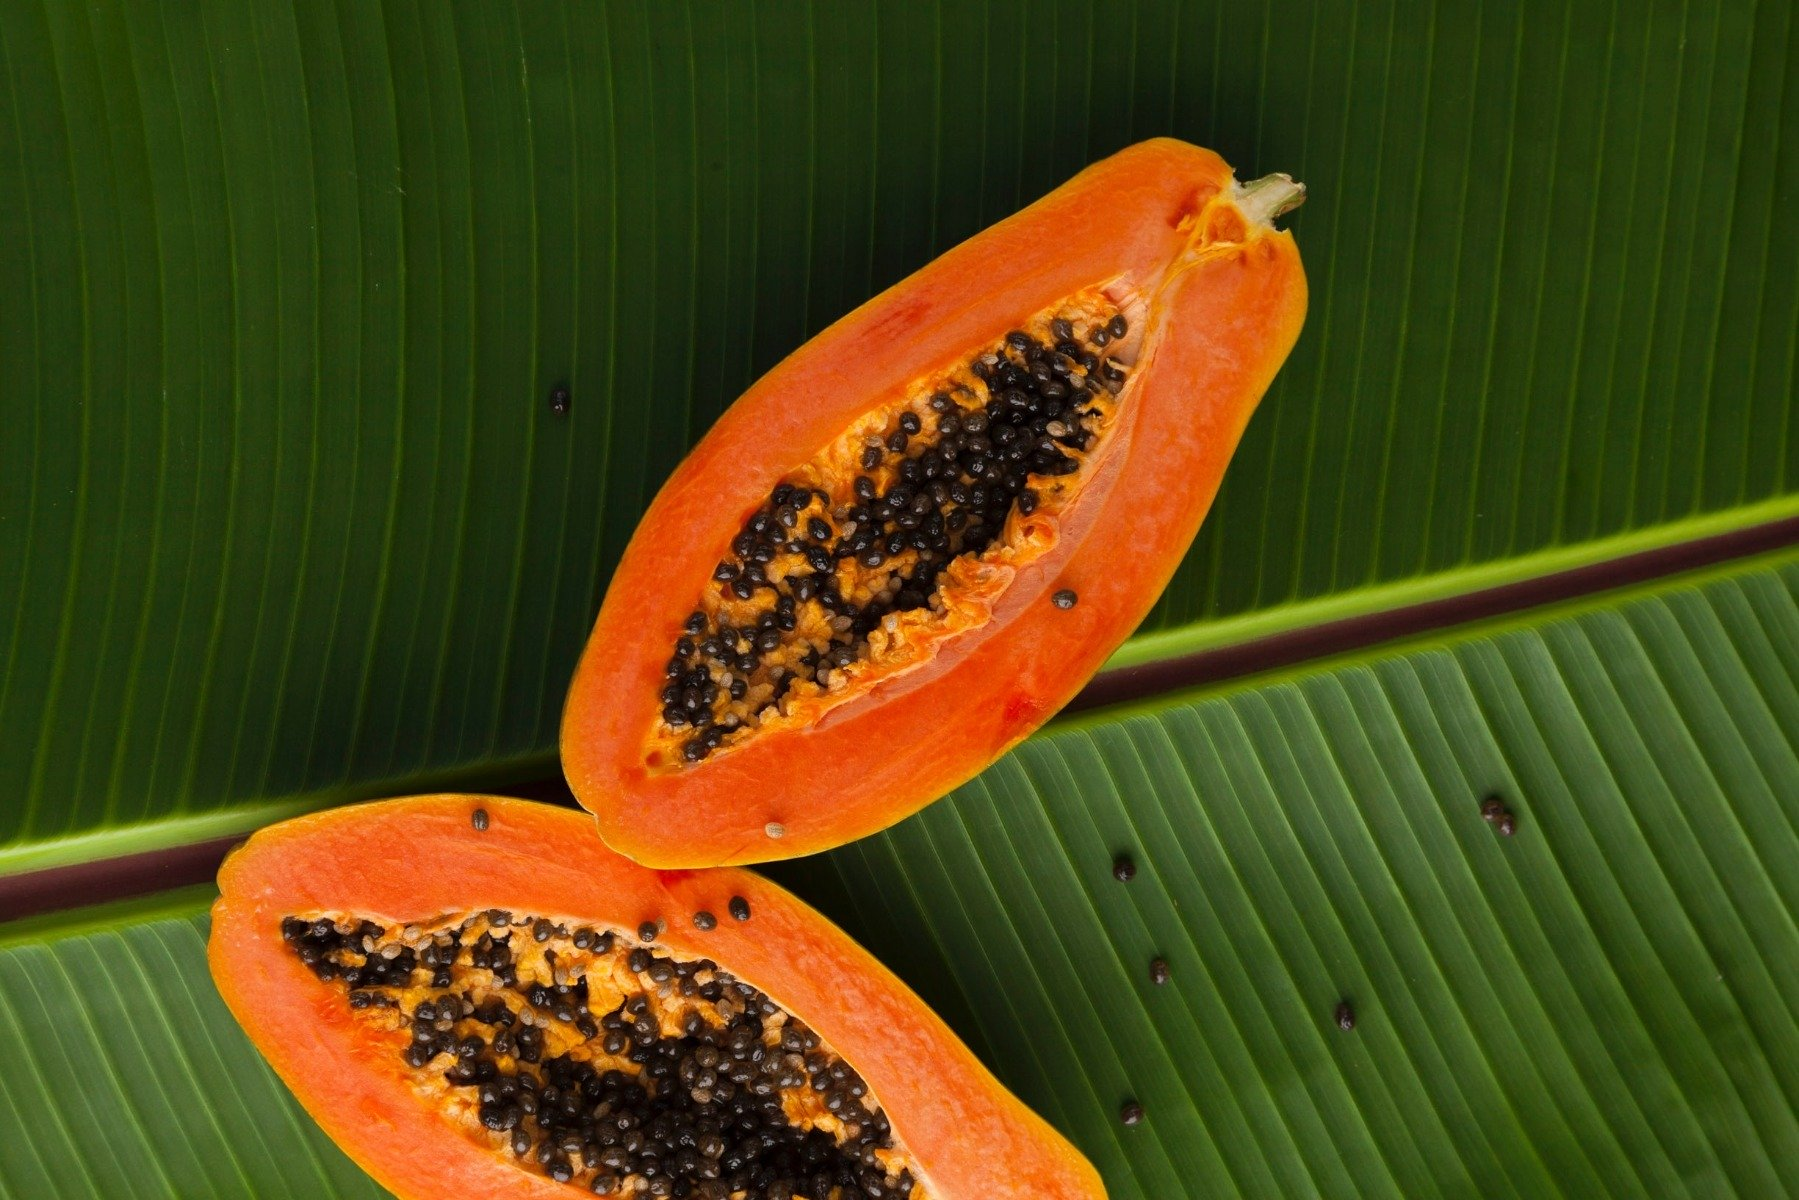 Foods containing digestive enzymes - Papaya